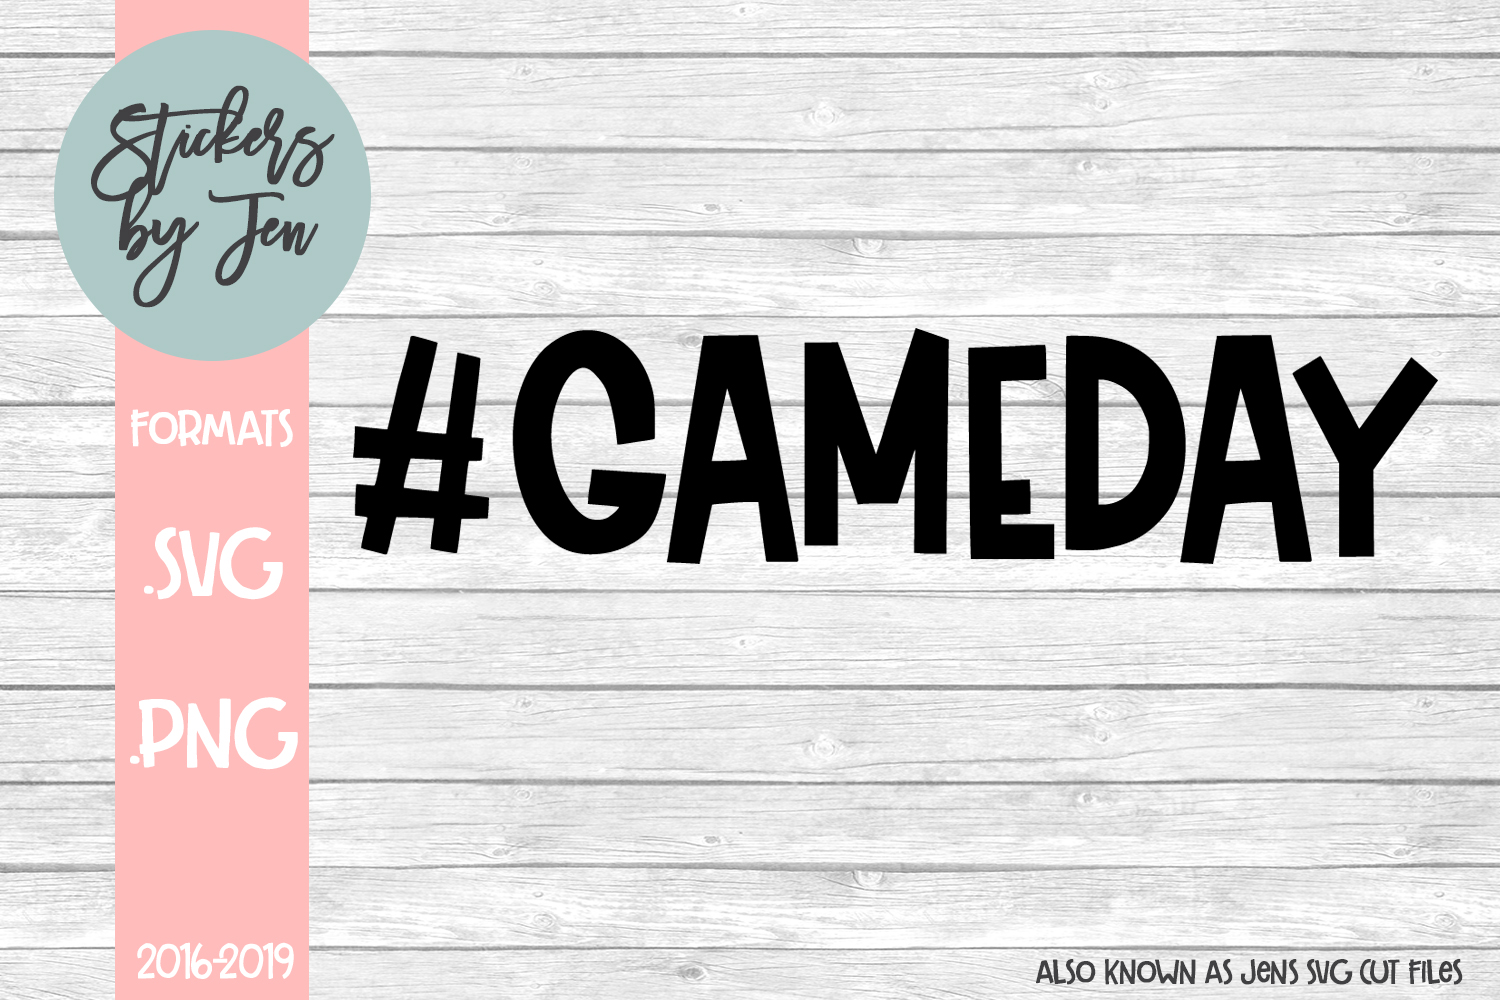 Download Free Game Day Svg Graphic By Jens Svg Cut Files Creative Fabrica for Cricut Explore, Silhouette and other cutting machines.